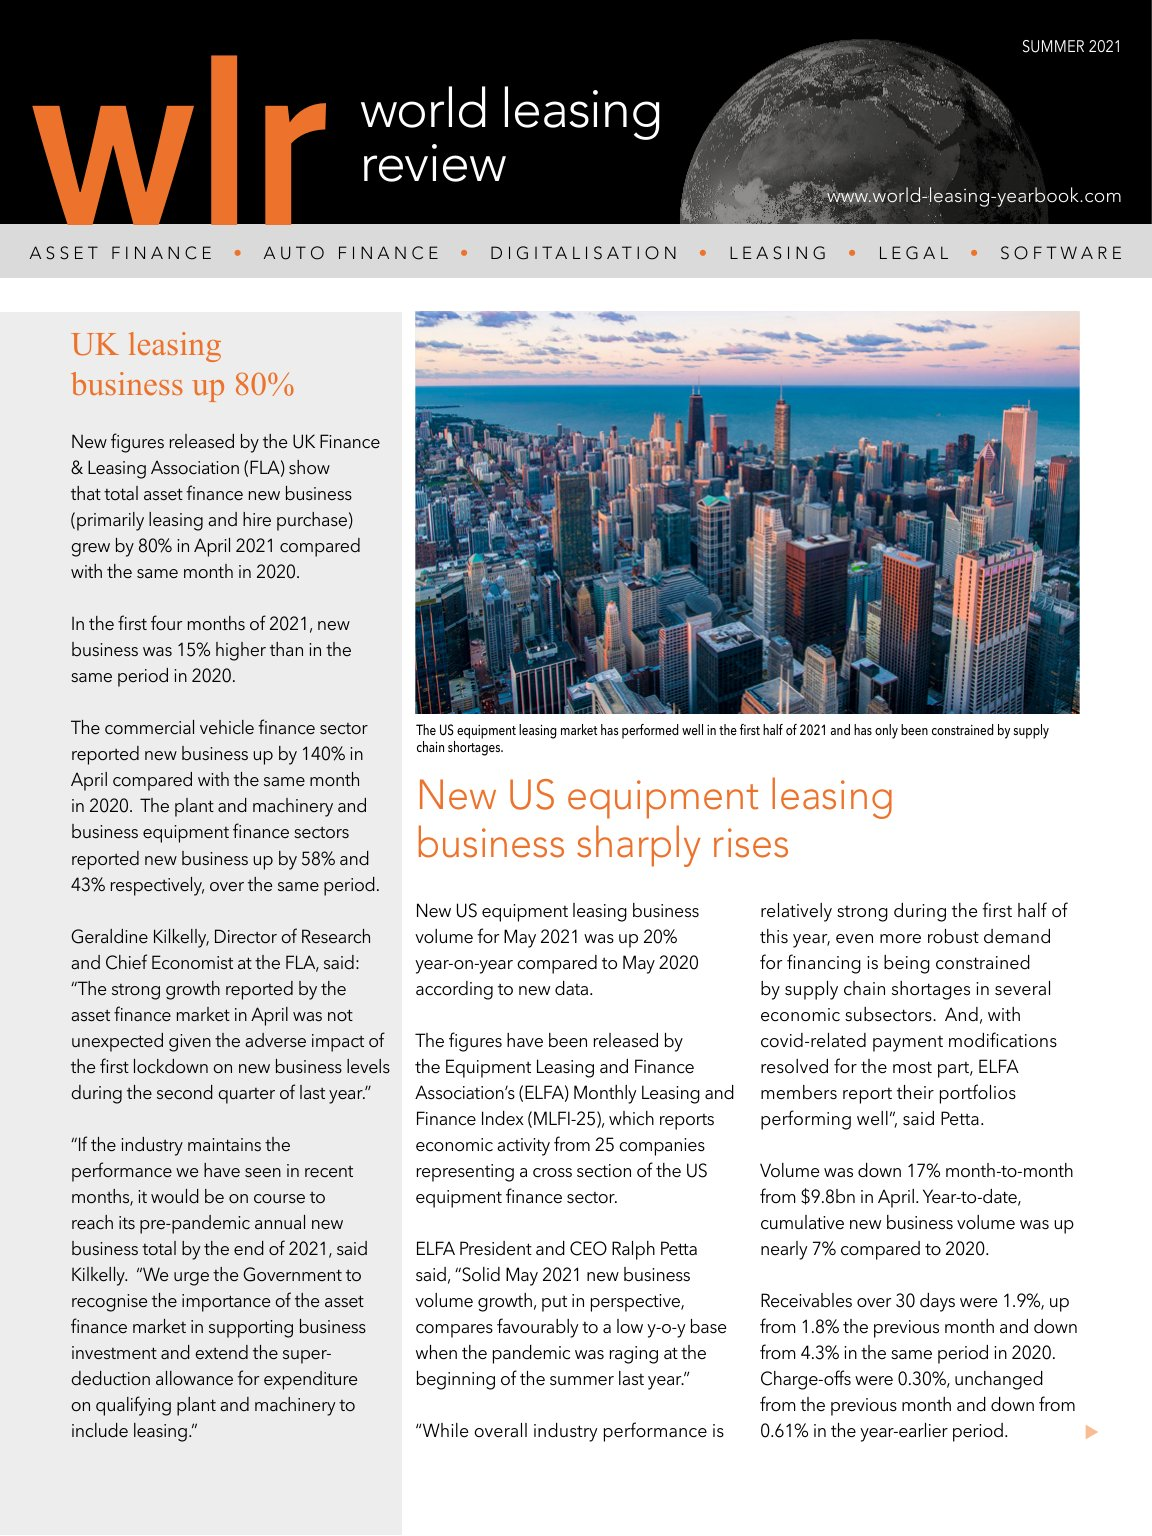 World Leasing Review Summer 2021 Issue